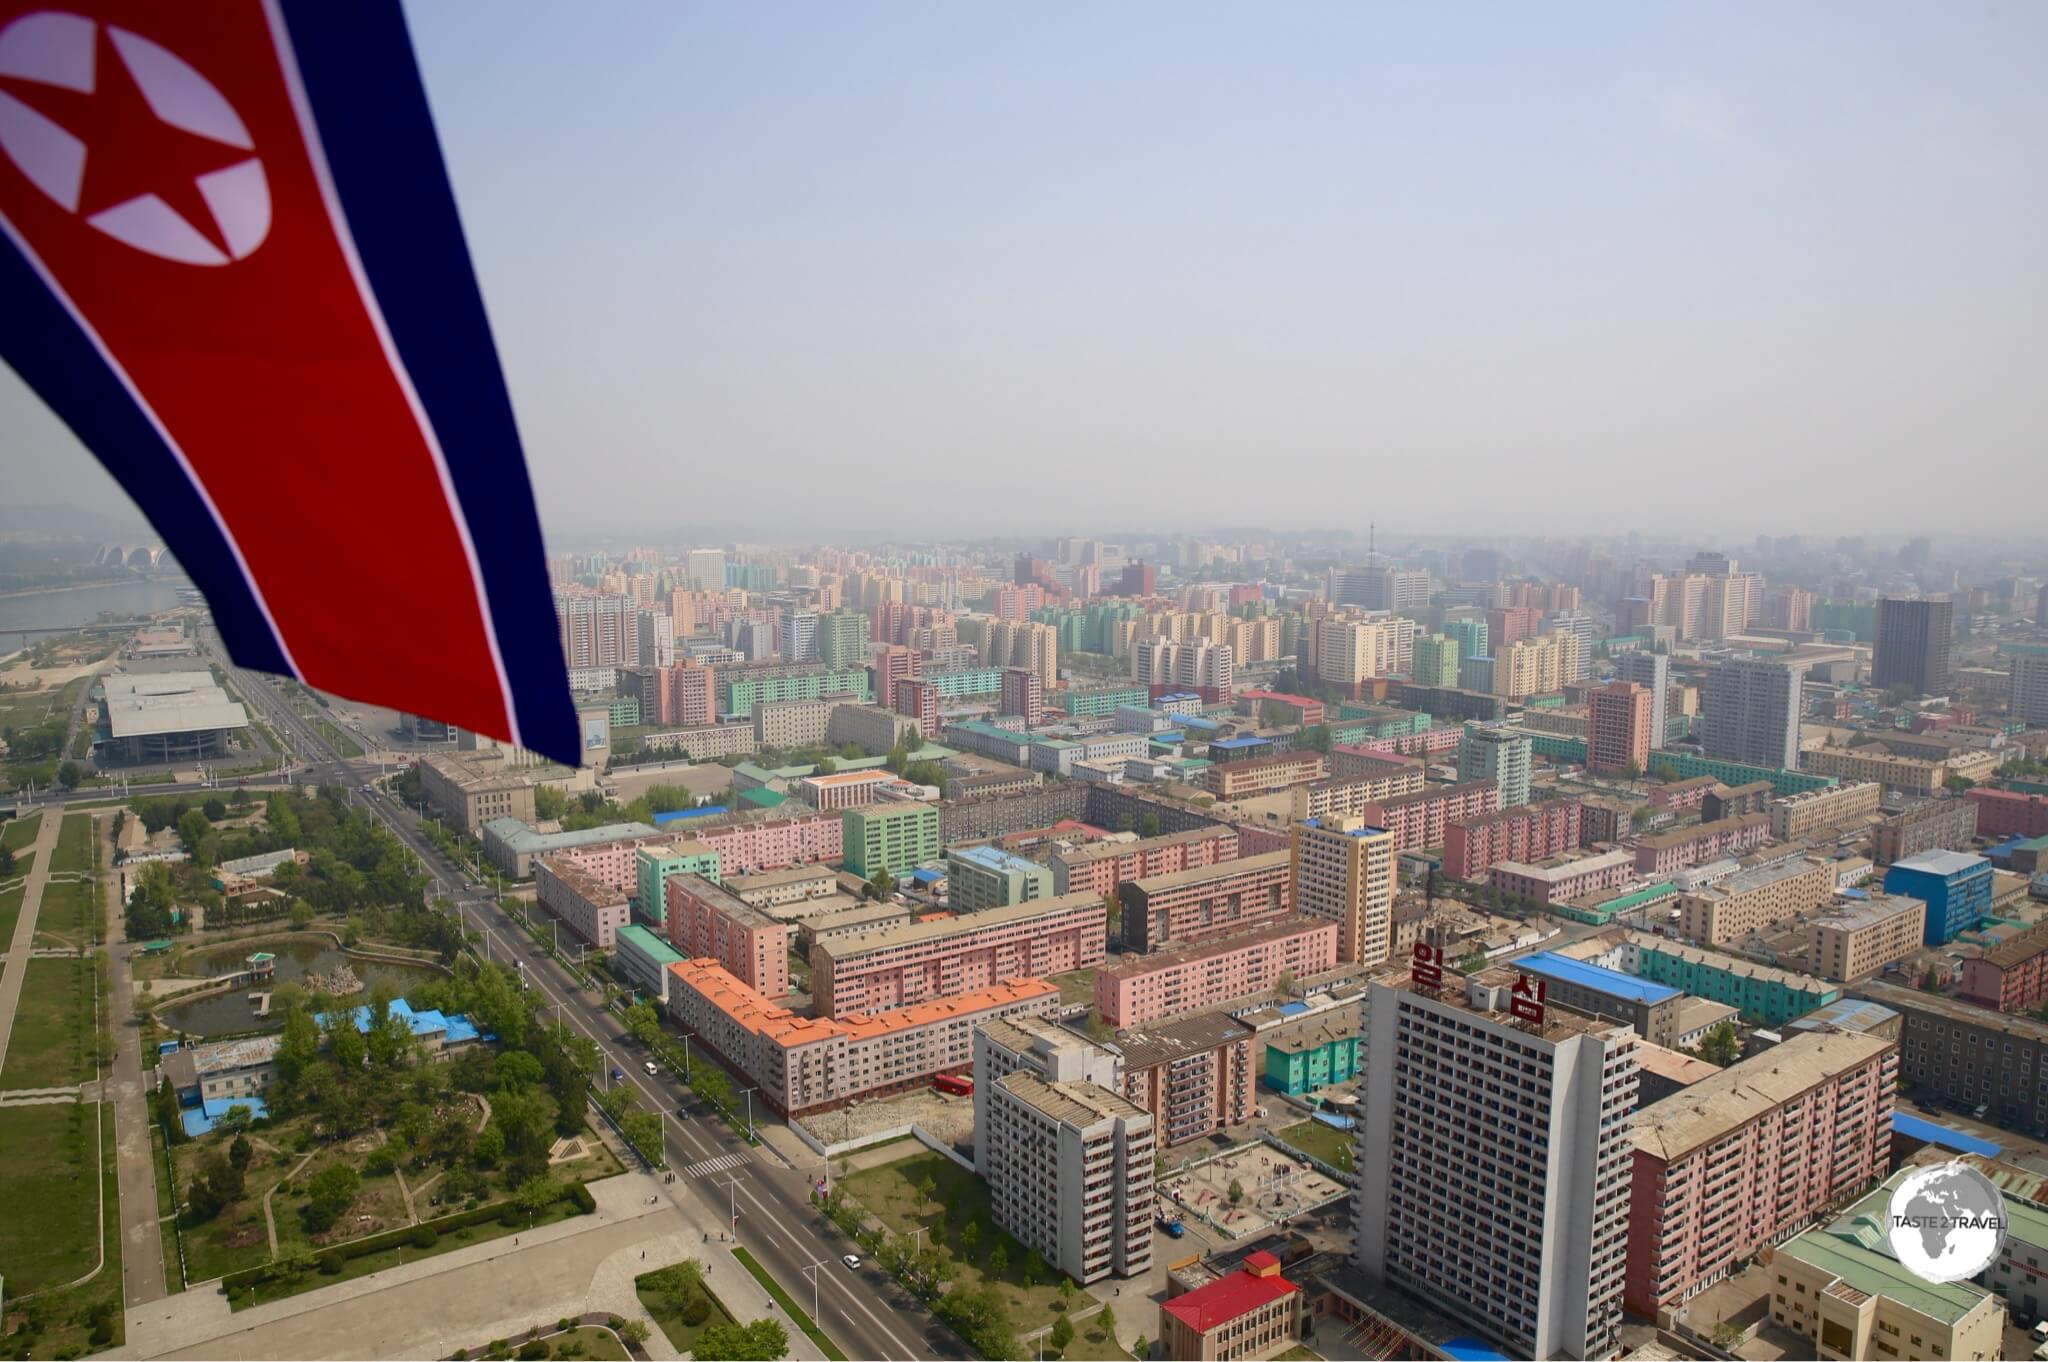 A view of the colourful apartment blocks of Pyongyang.